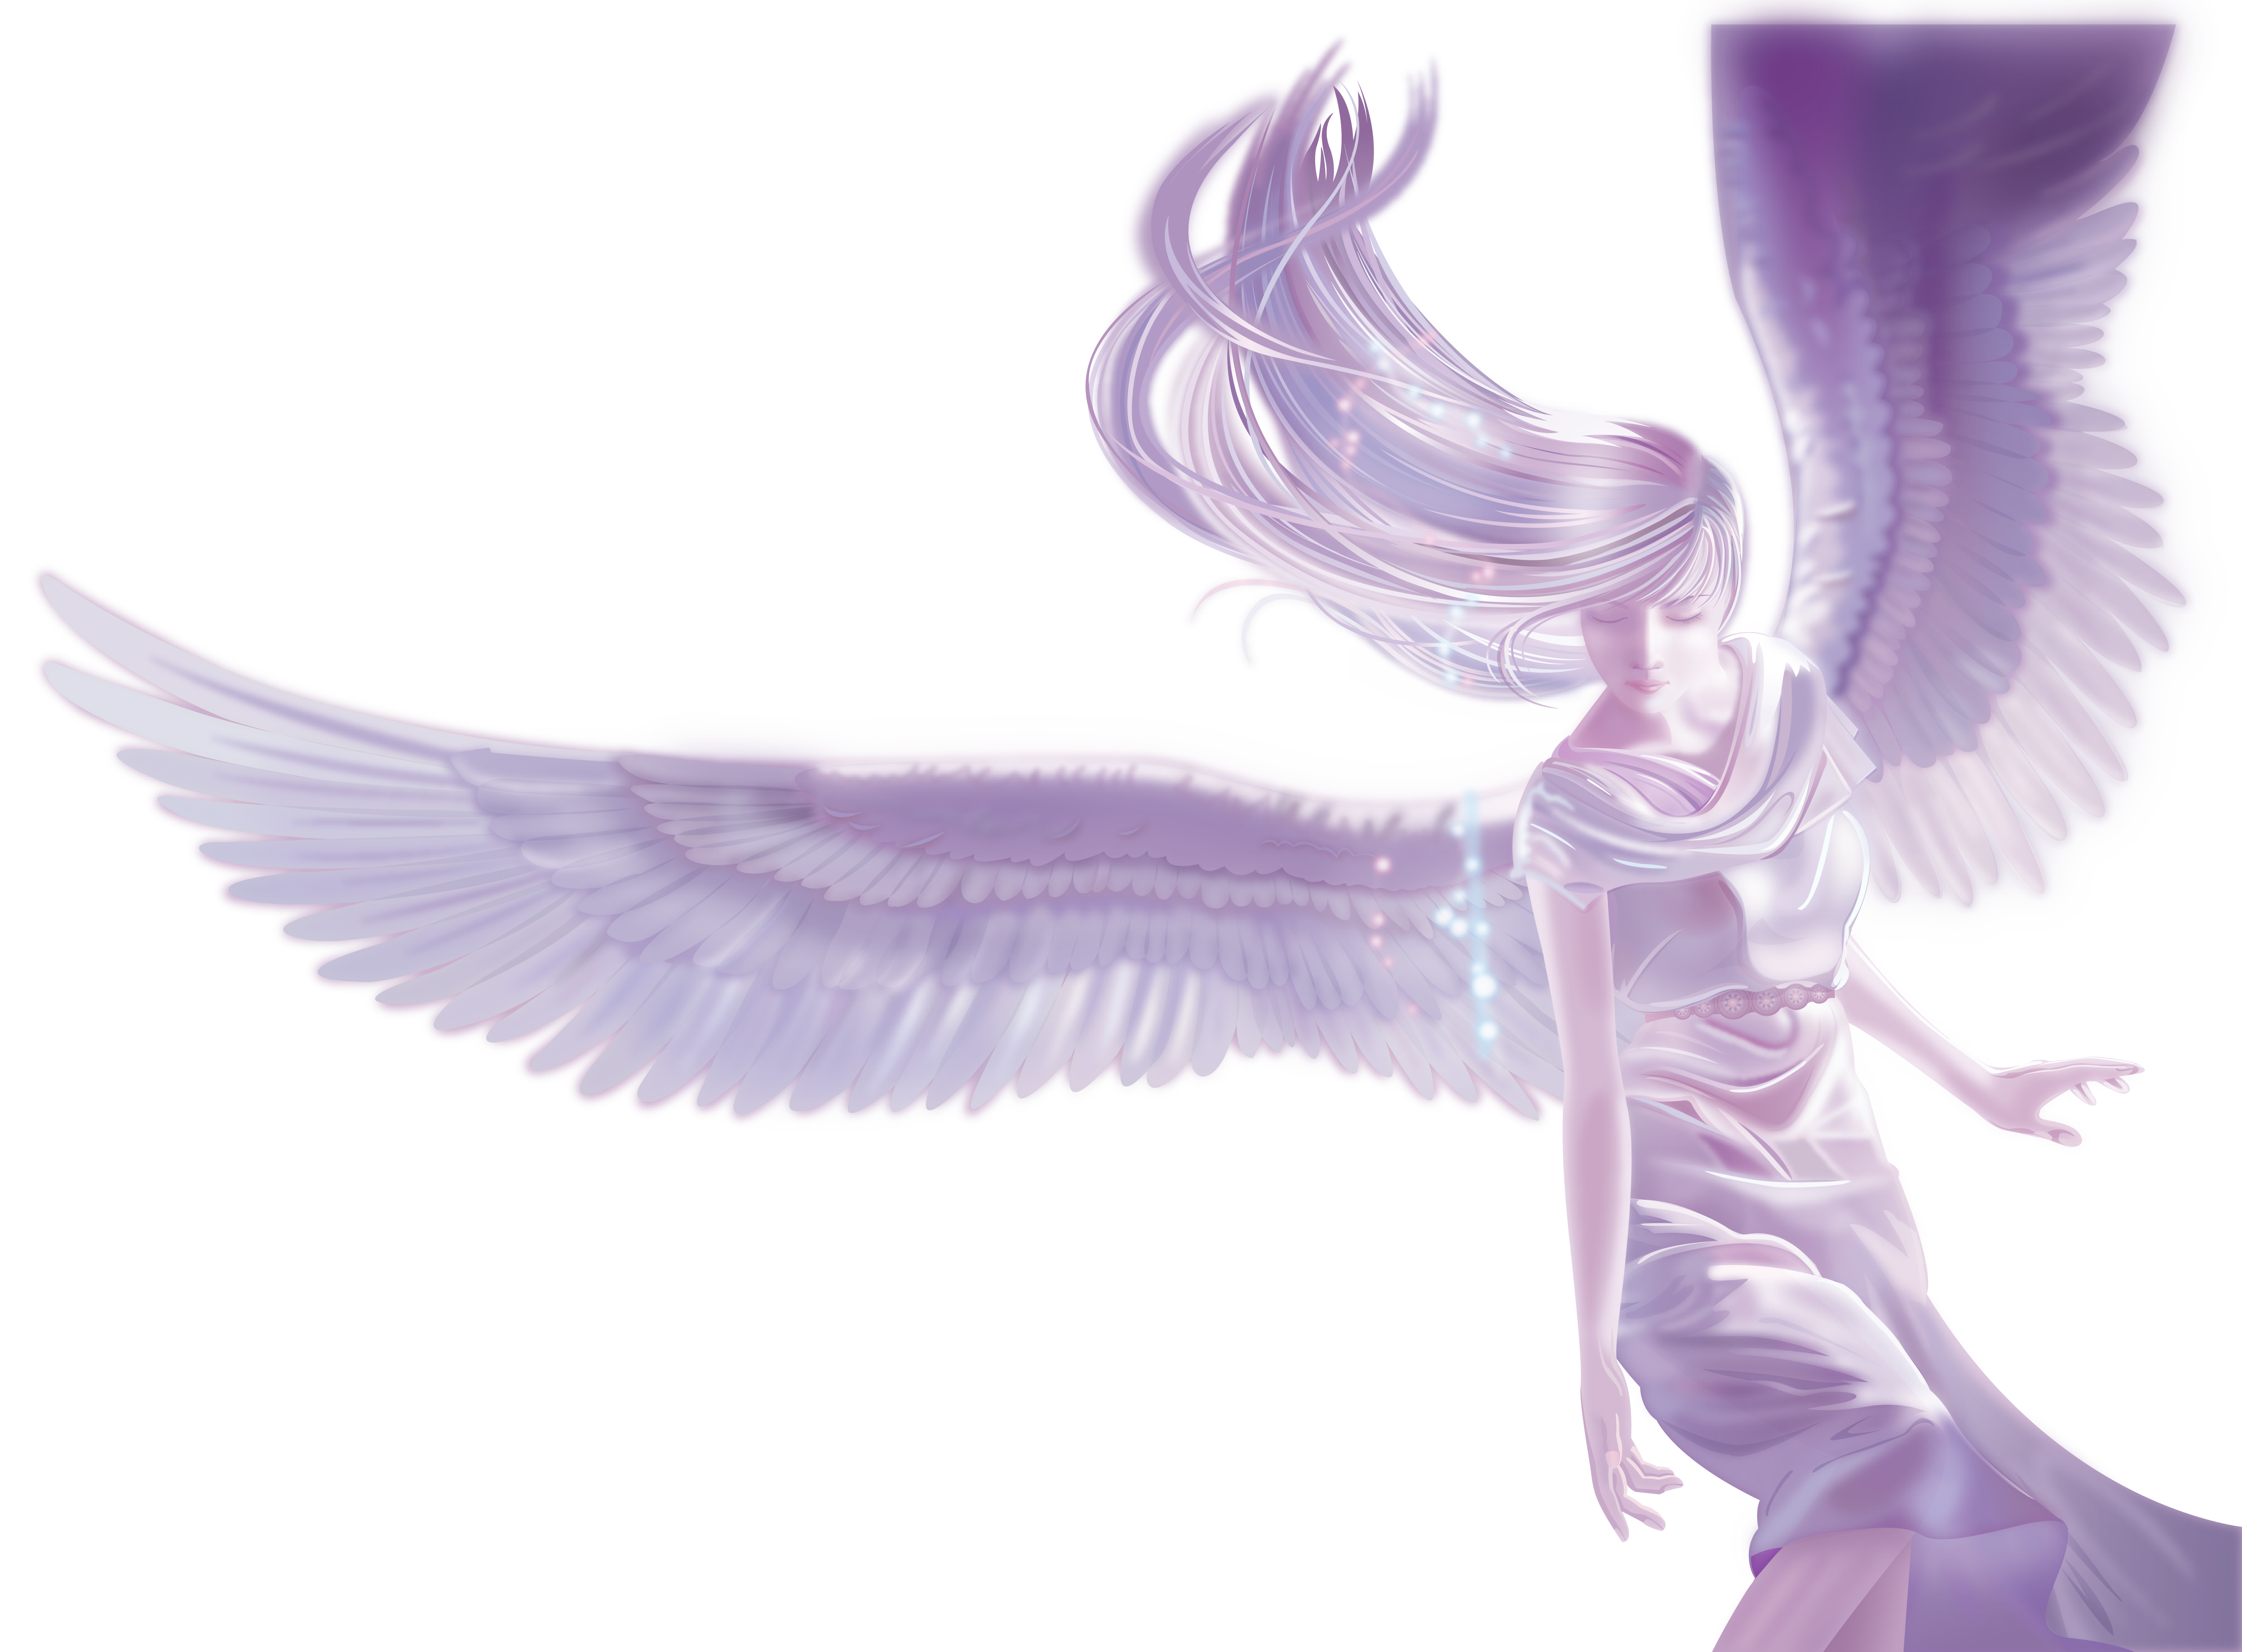 angel wallpapers images photos pictures backgrounds #20549